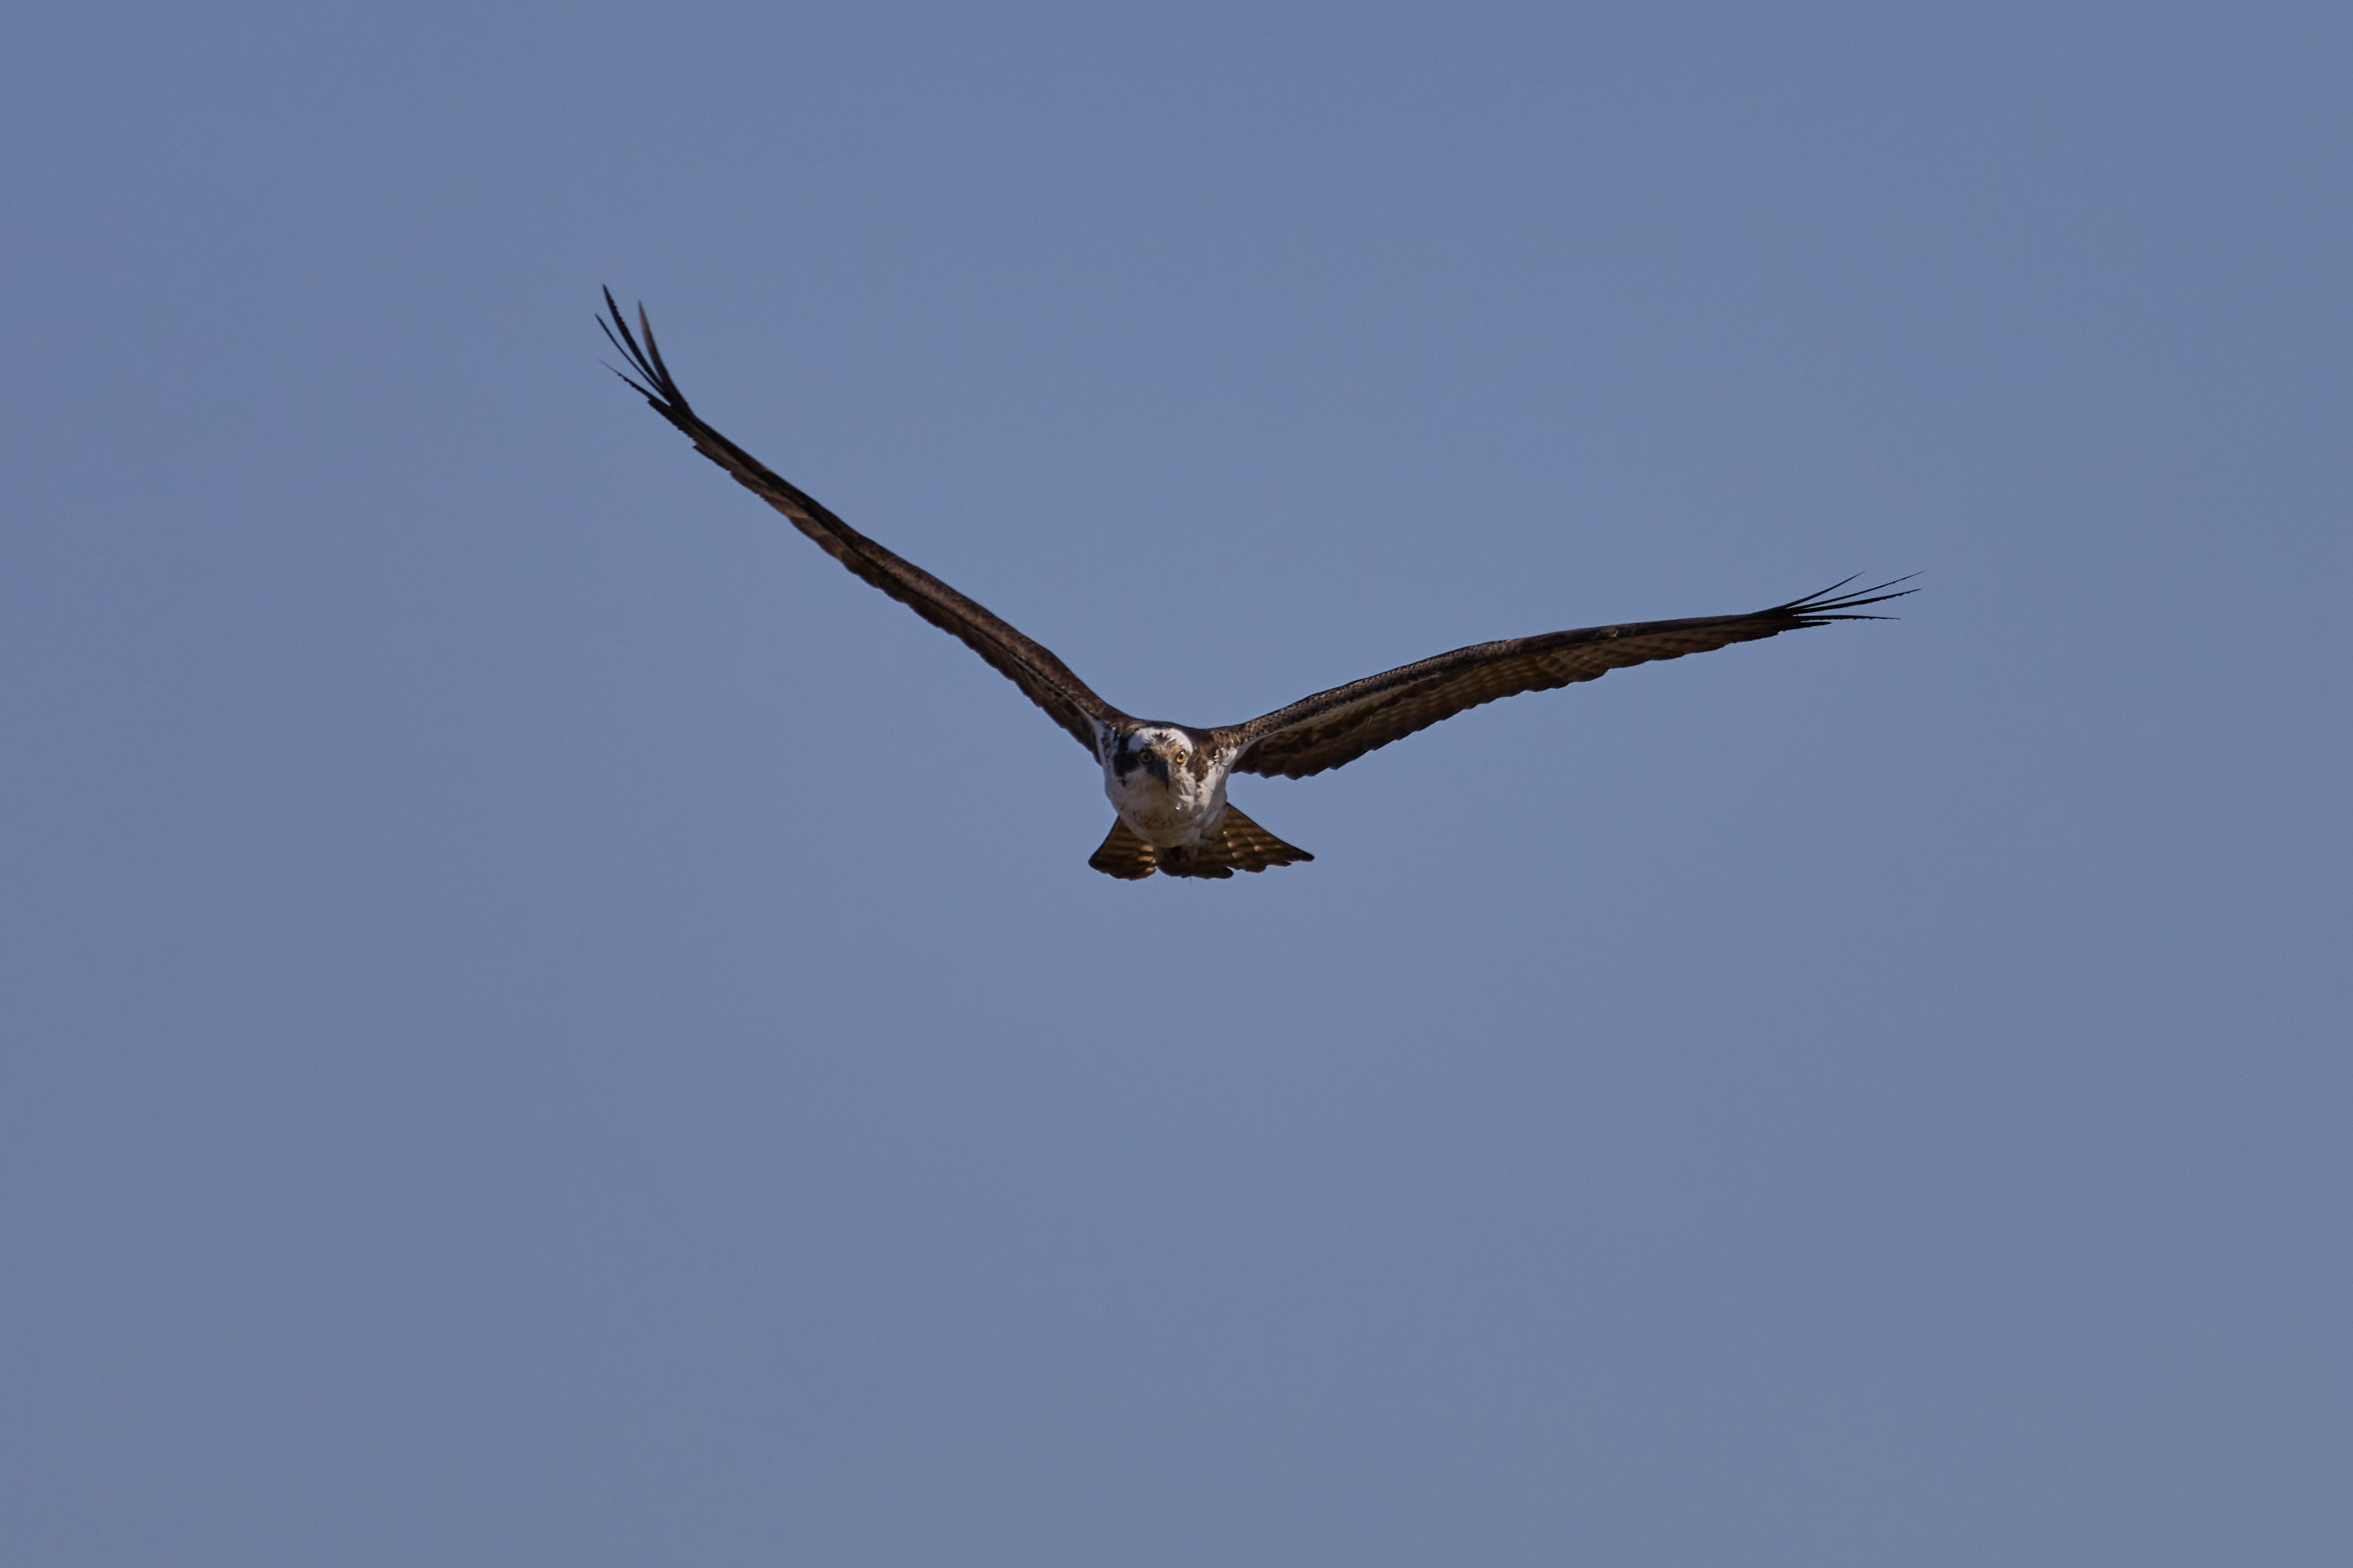 Osprey, with wings spread, in flight.